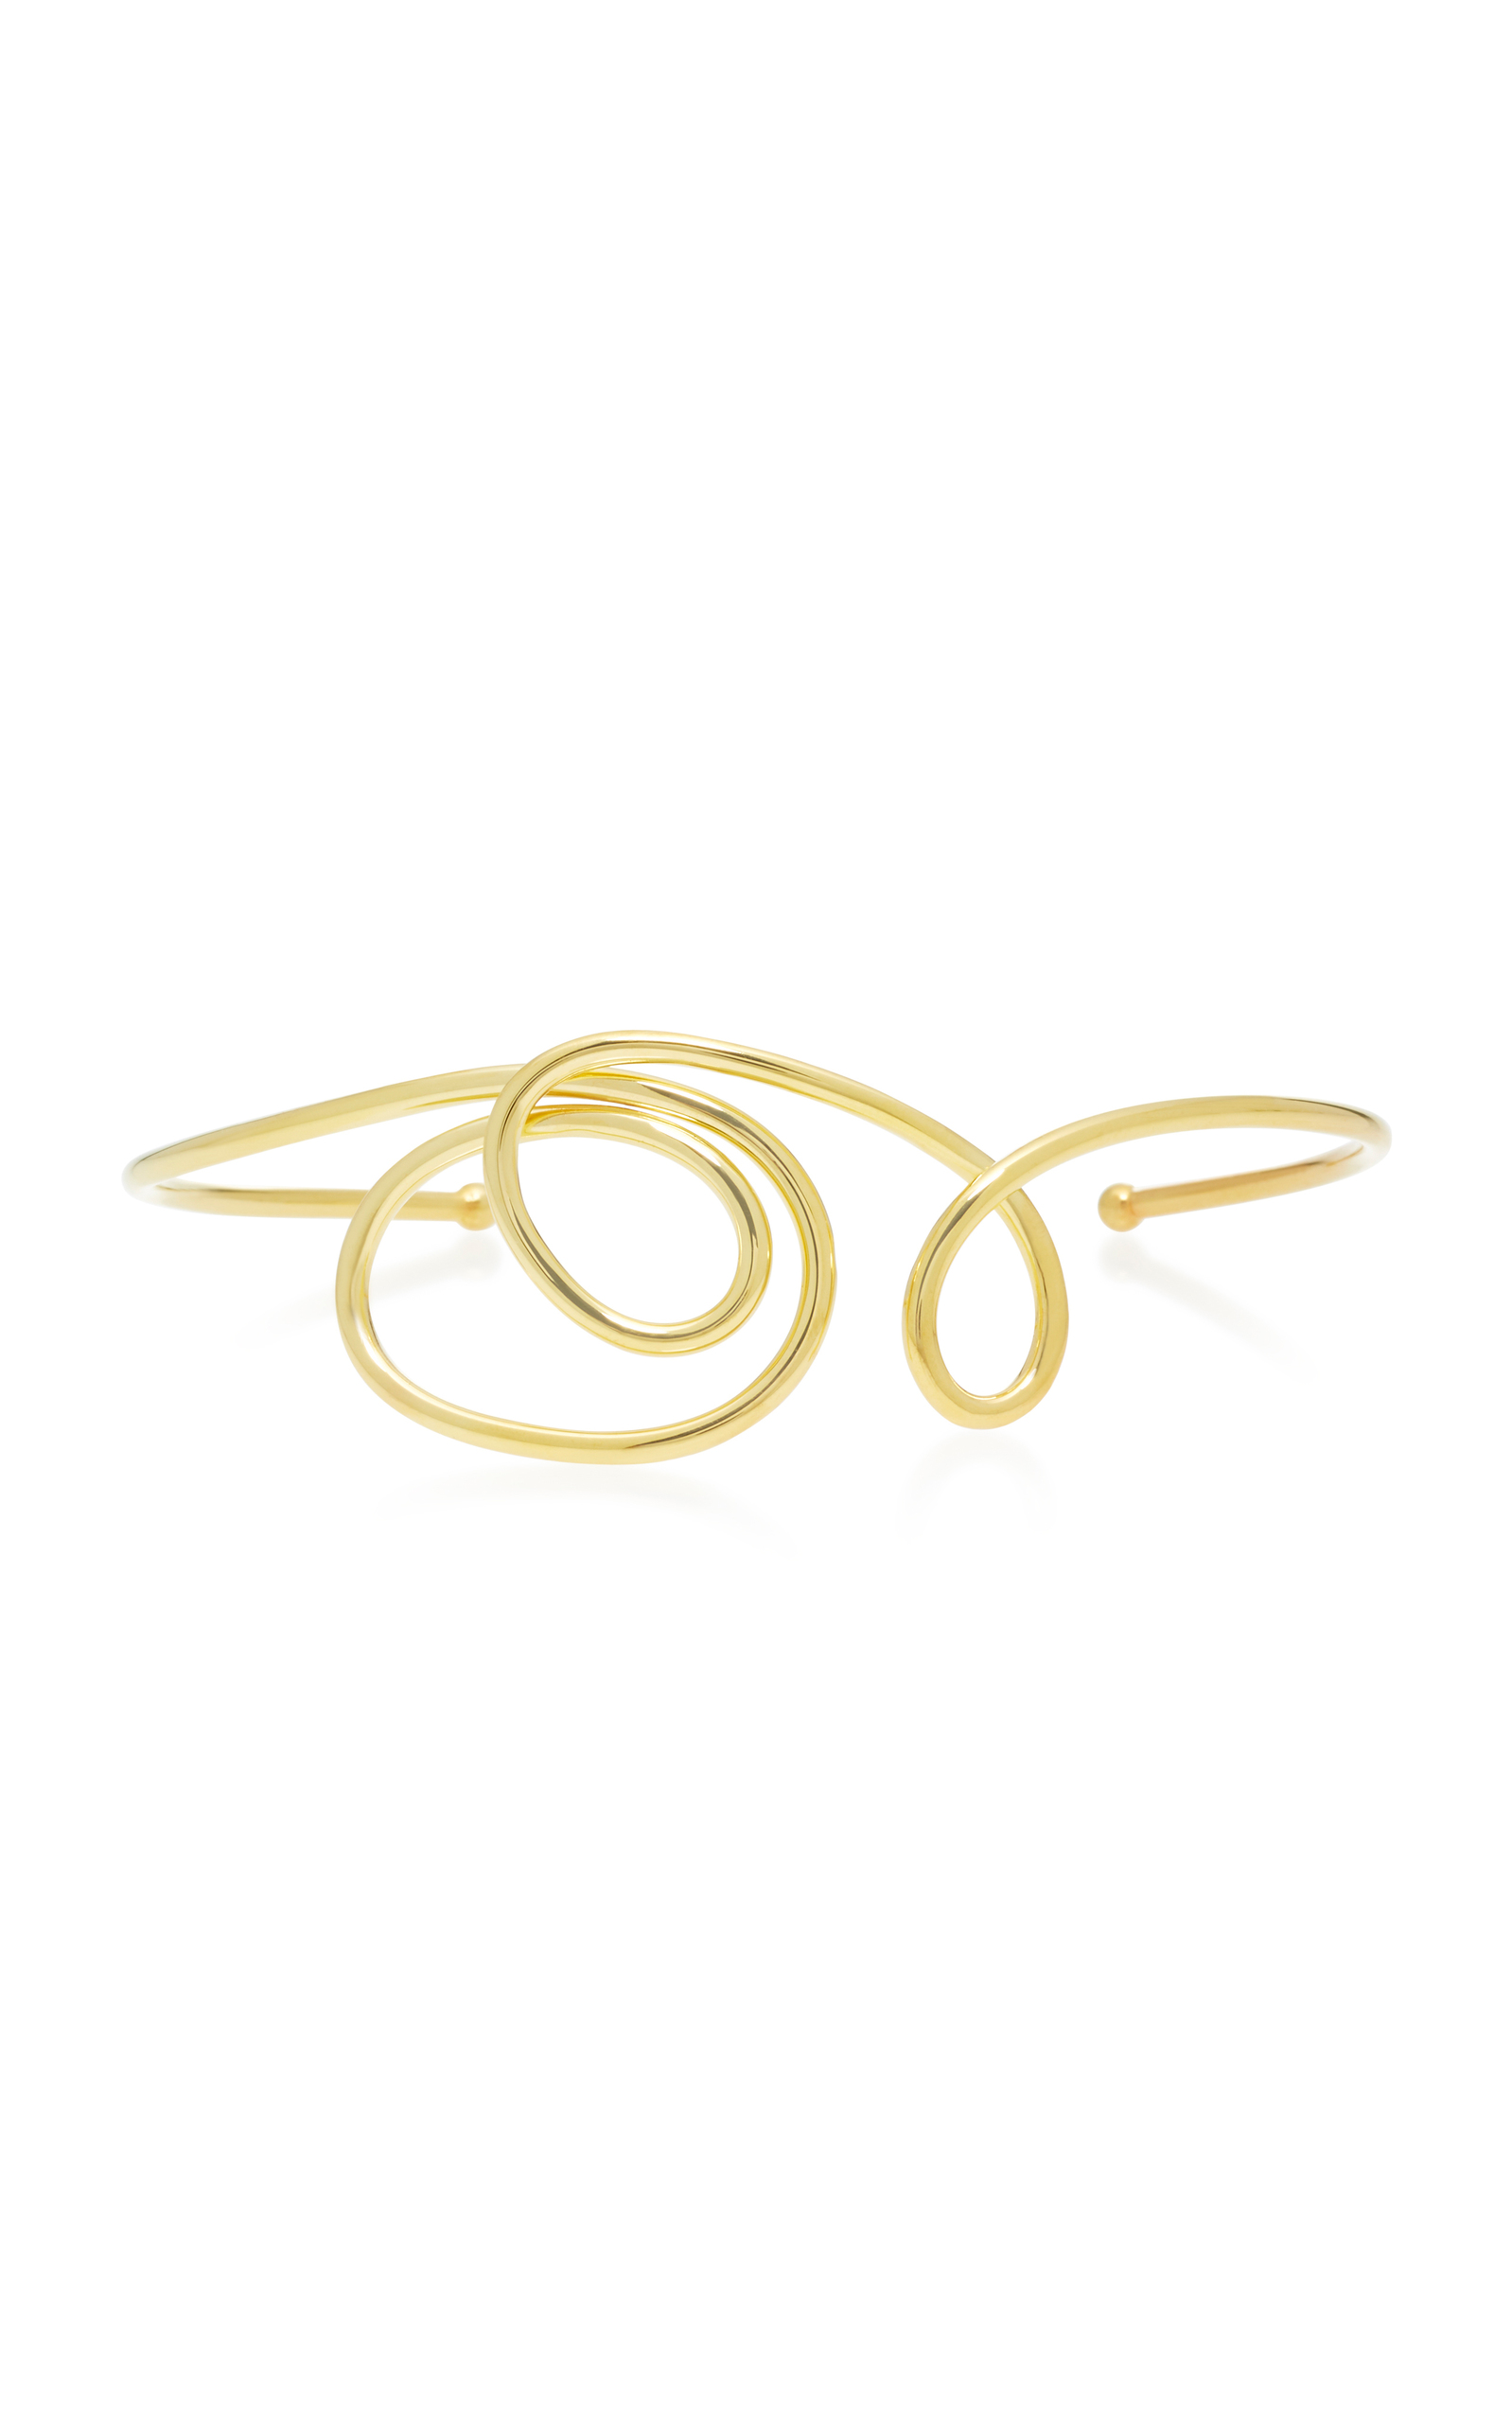 JOANNA LAURA CONSTANTINE GOLD-PLATED KNOT CHOKER NECKLACE